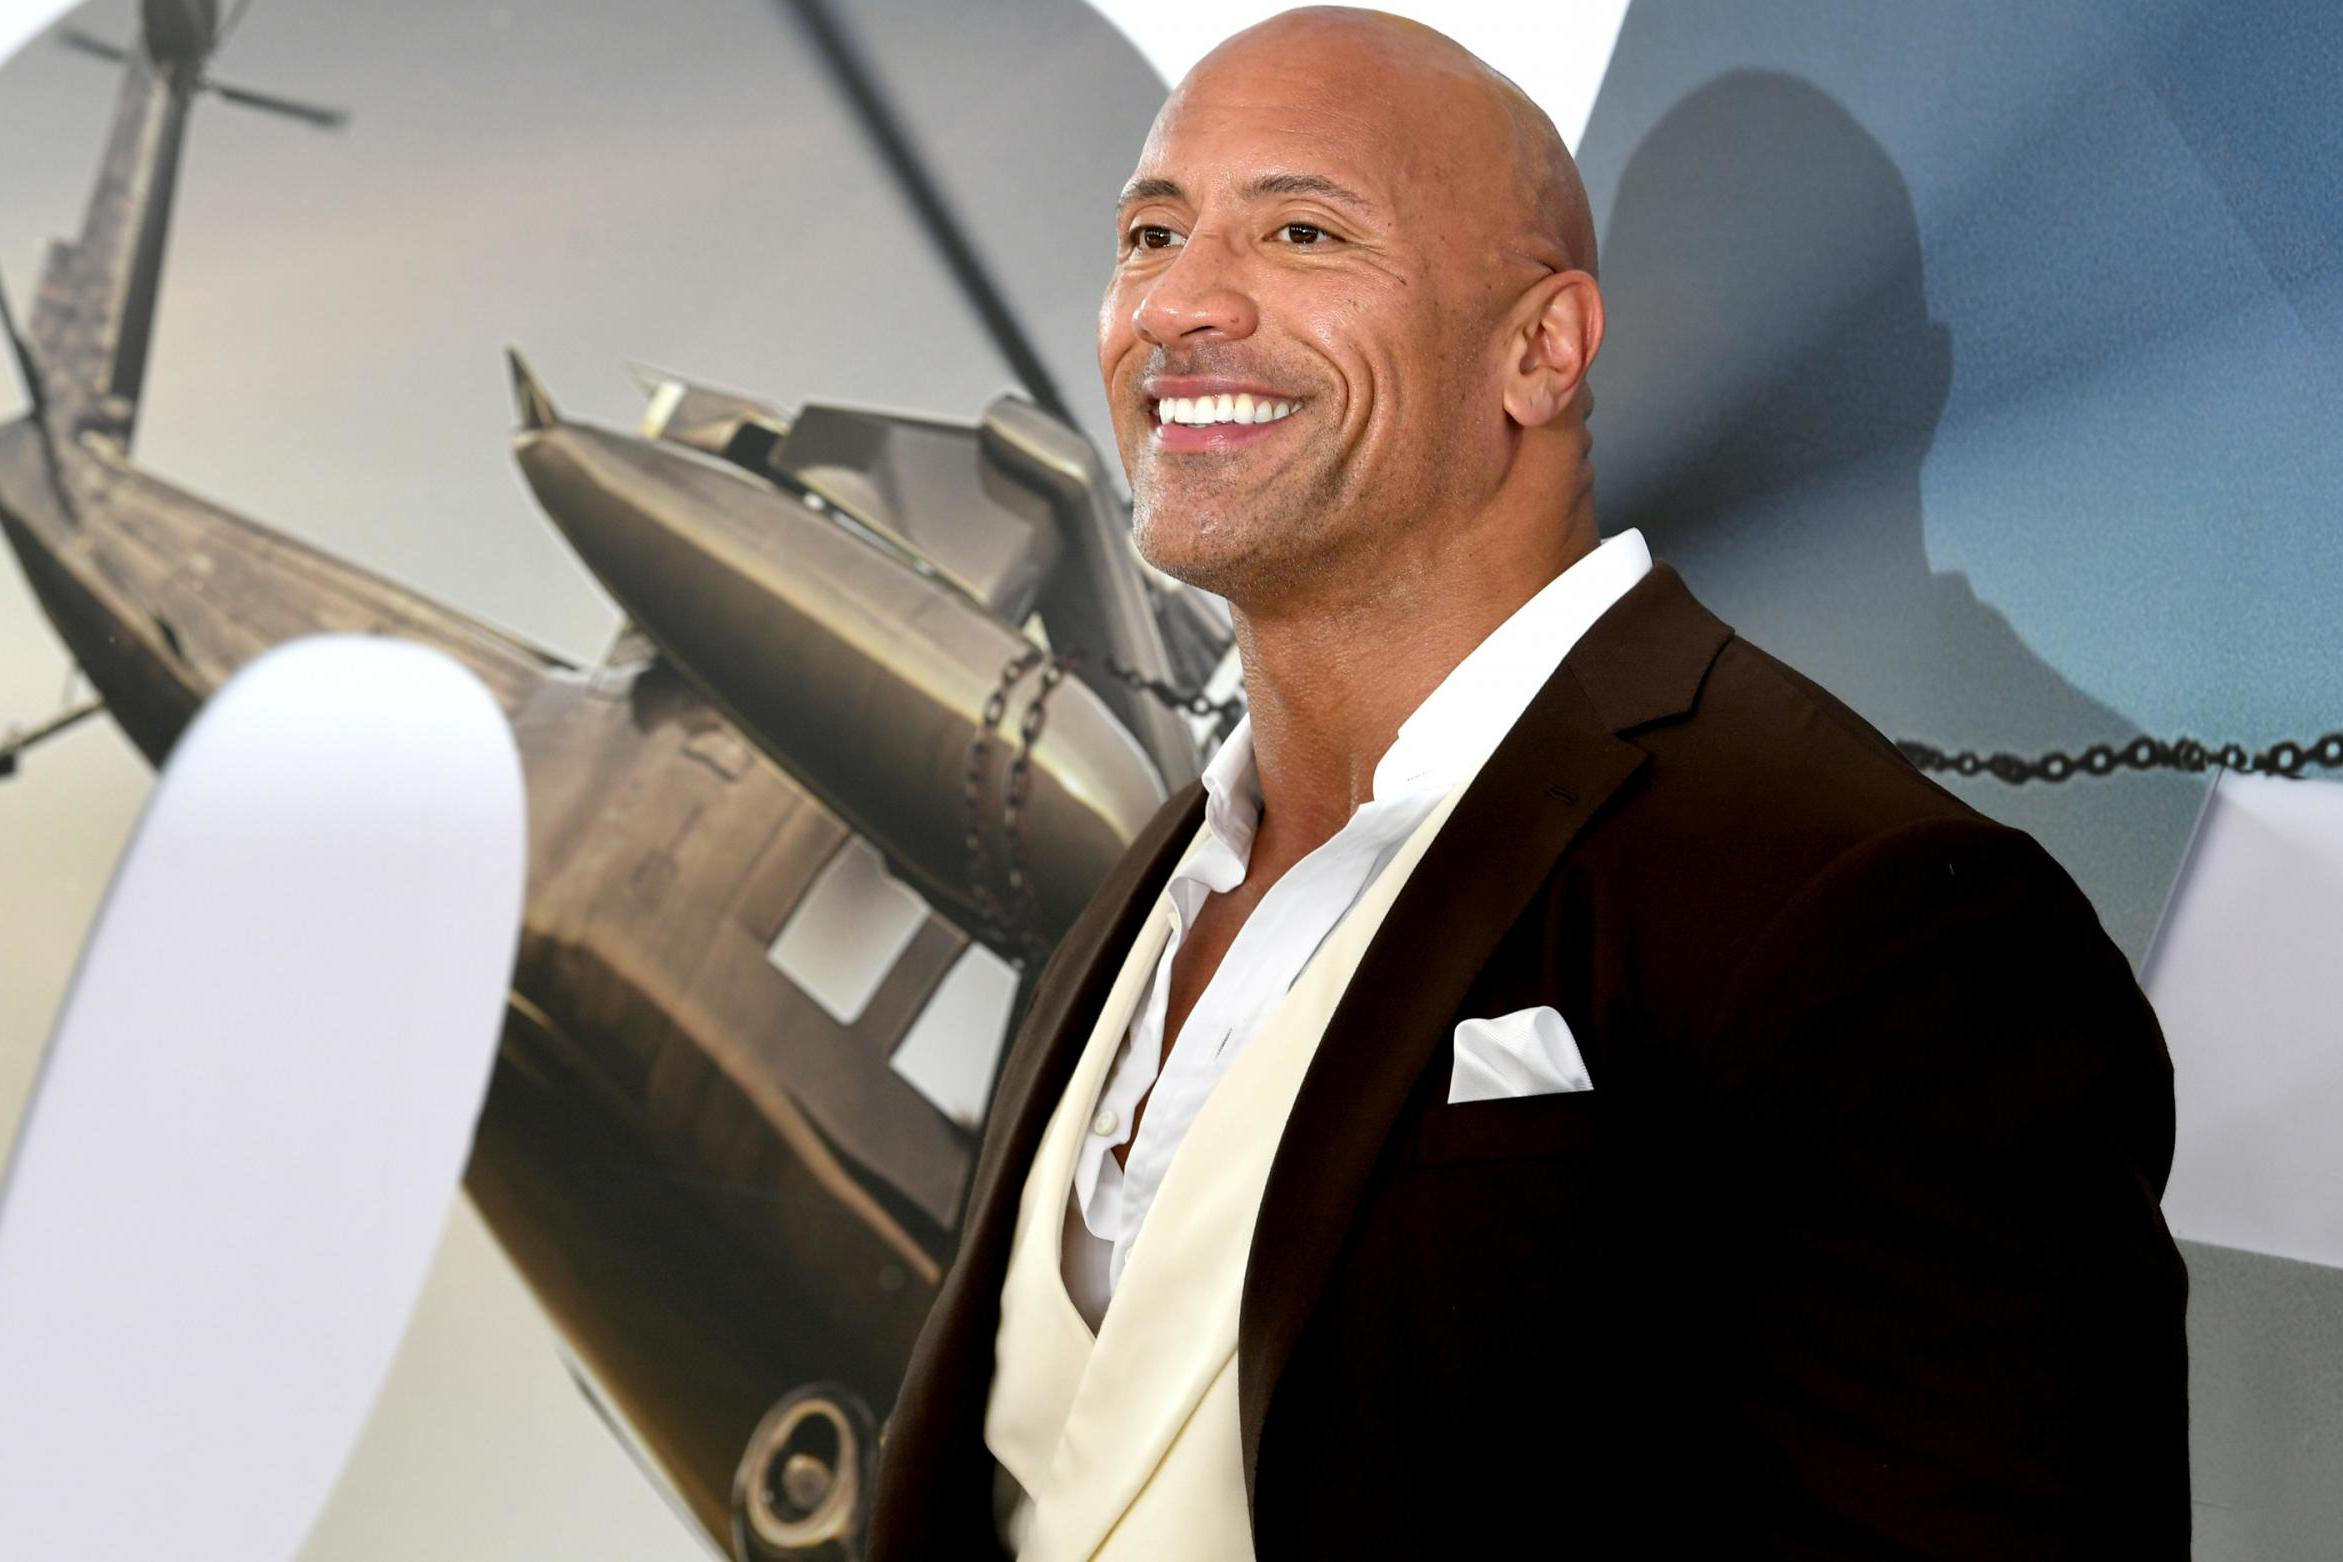 Highest paid actors 2019: World's richest stars, from Dwayne Johnson to Chris Hemsworth